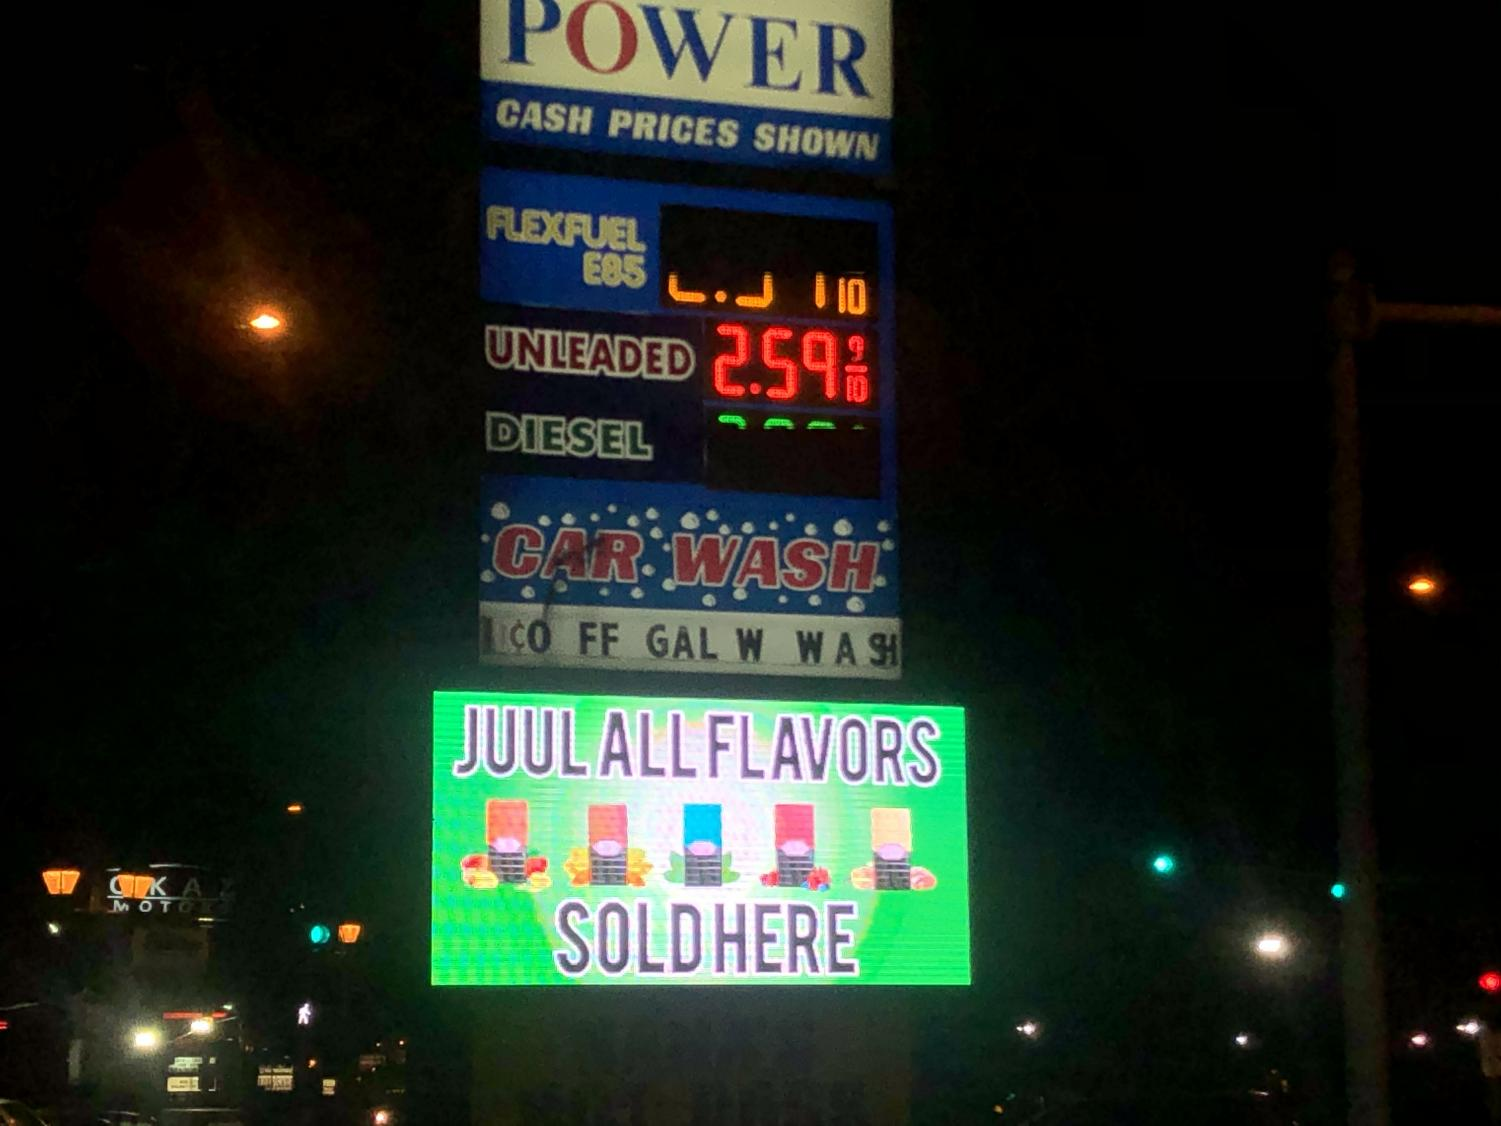 Power Mart, a local gas station showcases an ad for Juul Flavors.